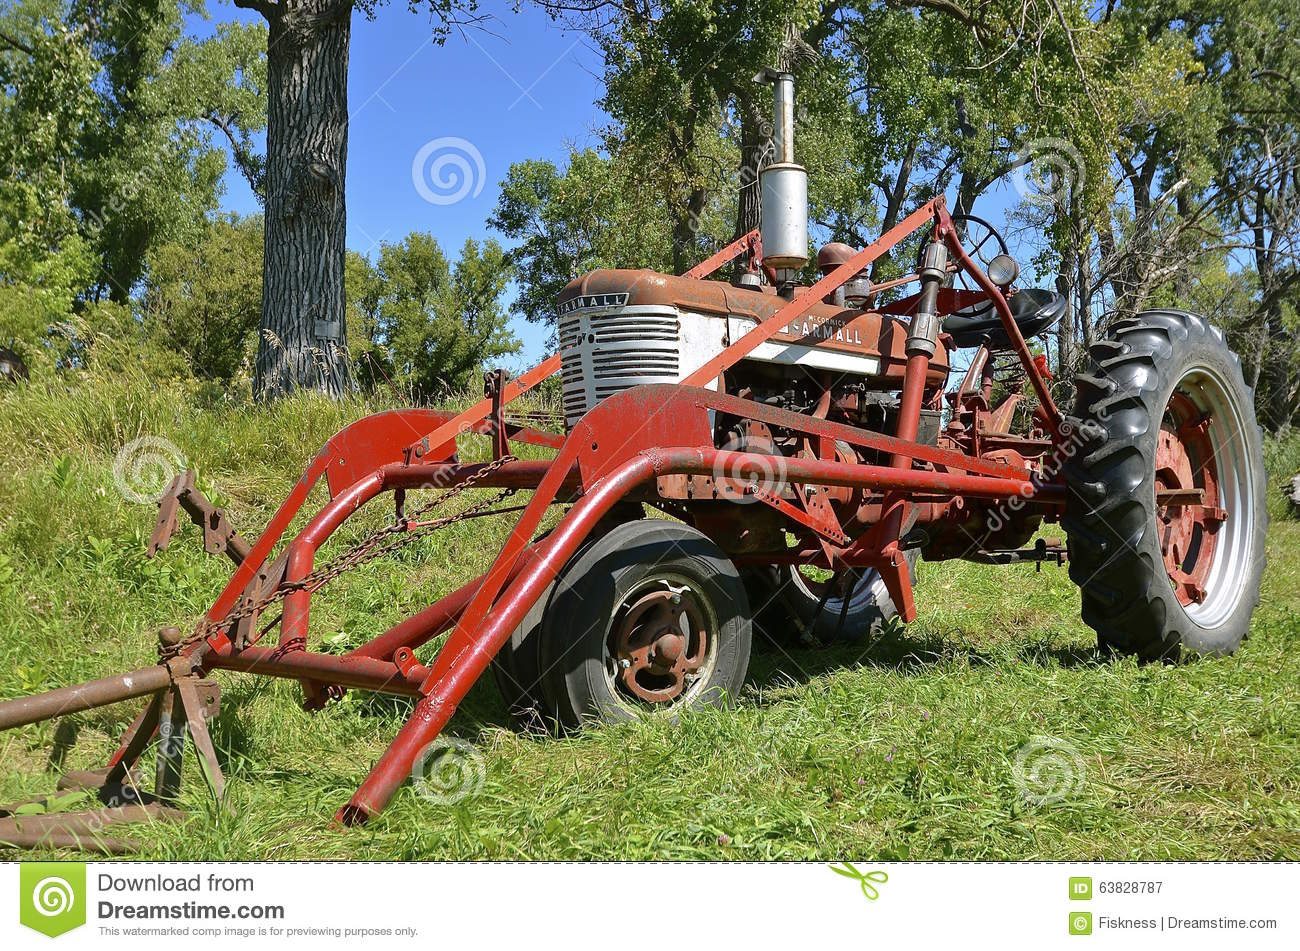 Farmall Tractor With Loader : Old farmall tractor with front end loader editorial